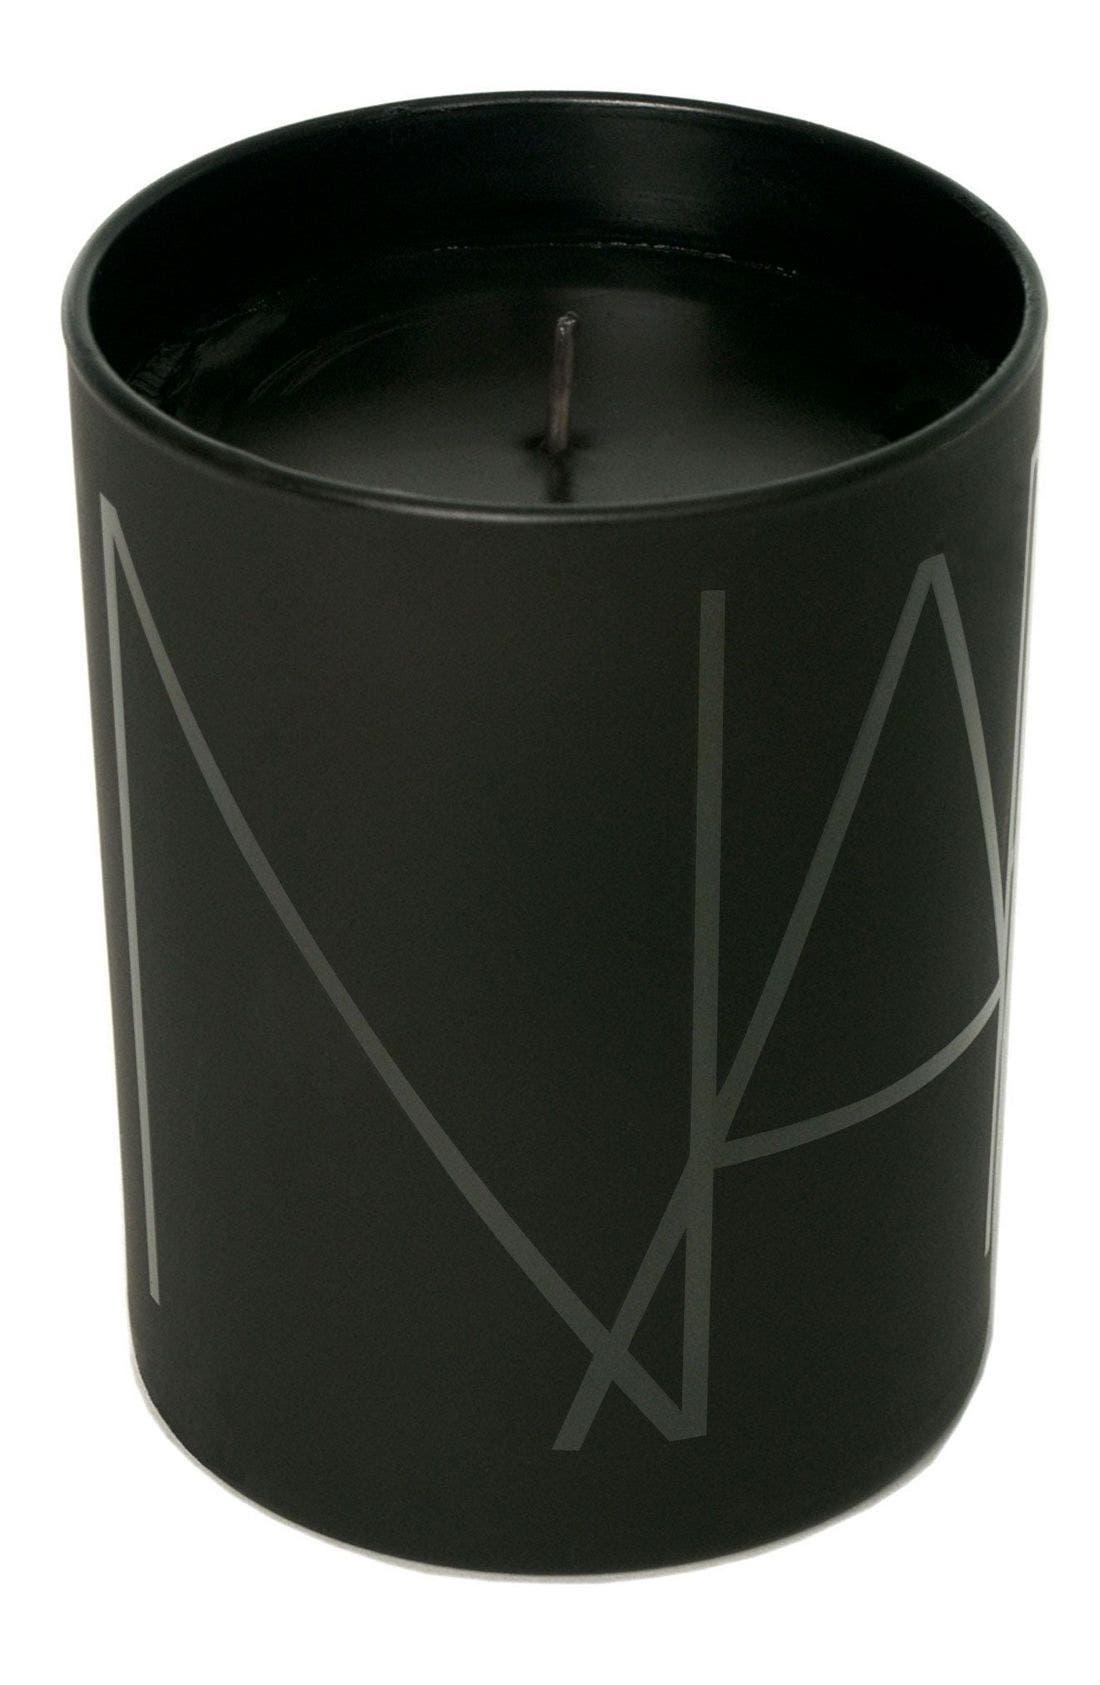 NARS Acapulco Candle